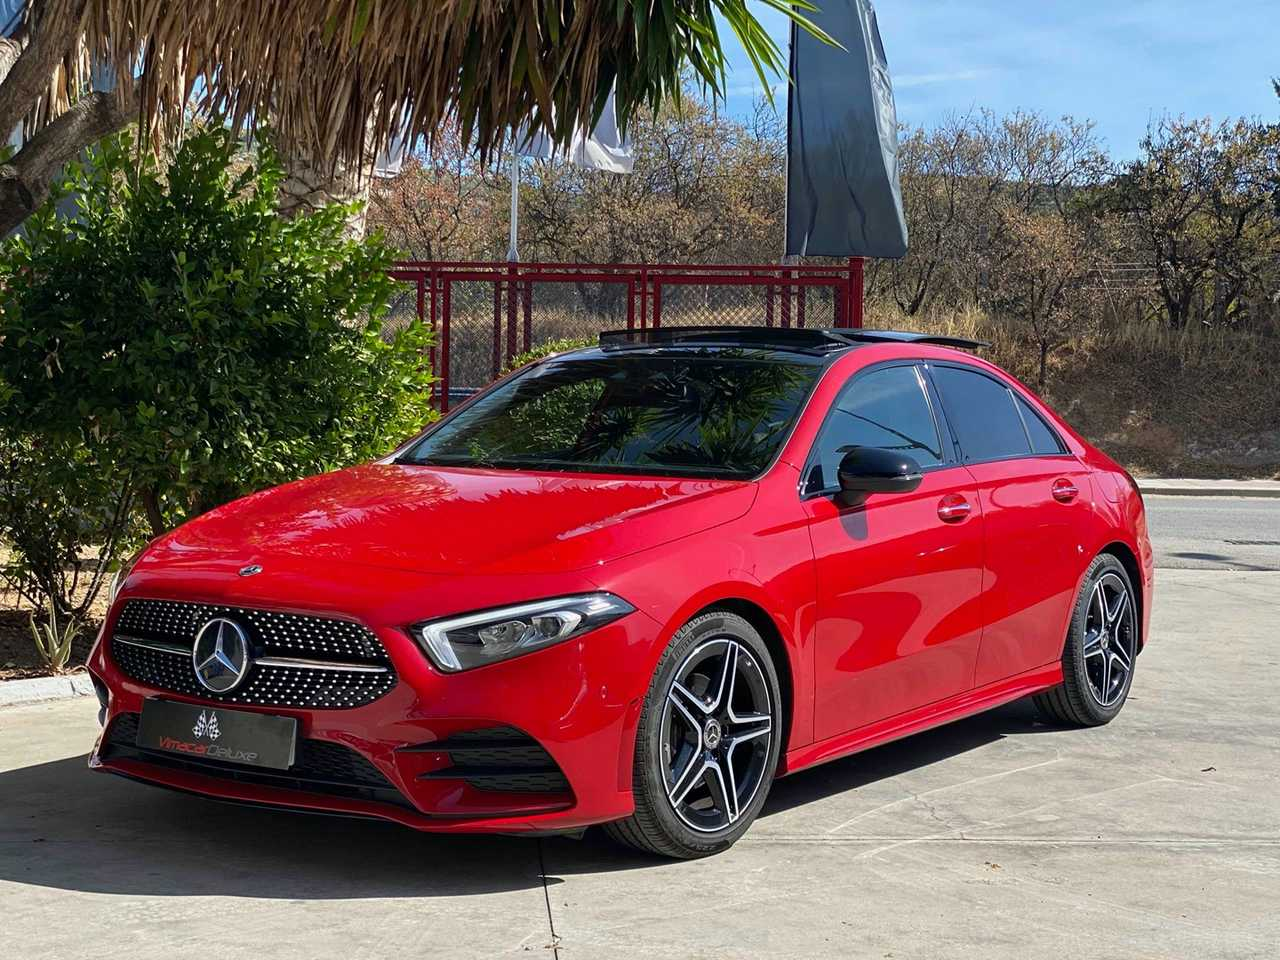 Mercedes Clase A 200 i Sedán, AMG Line, Techo panoramico, Paq. Premium   - Foto 1